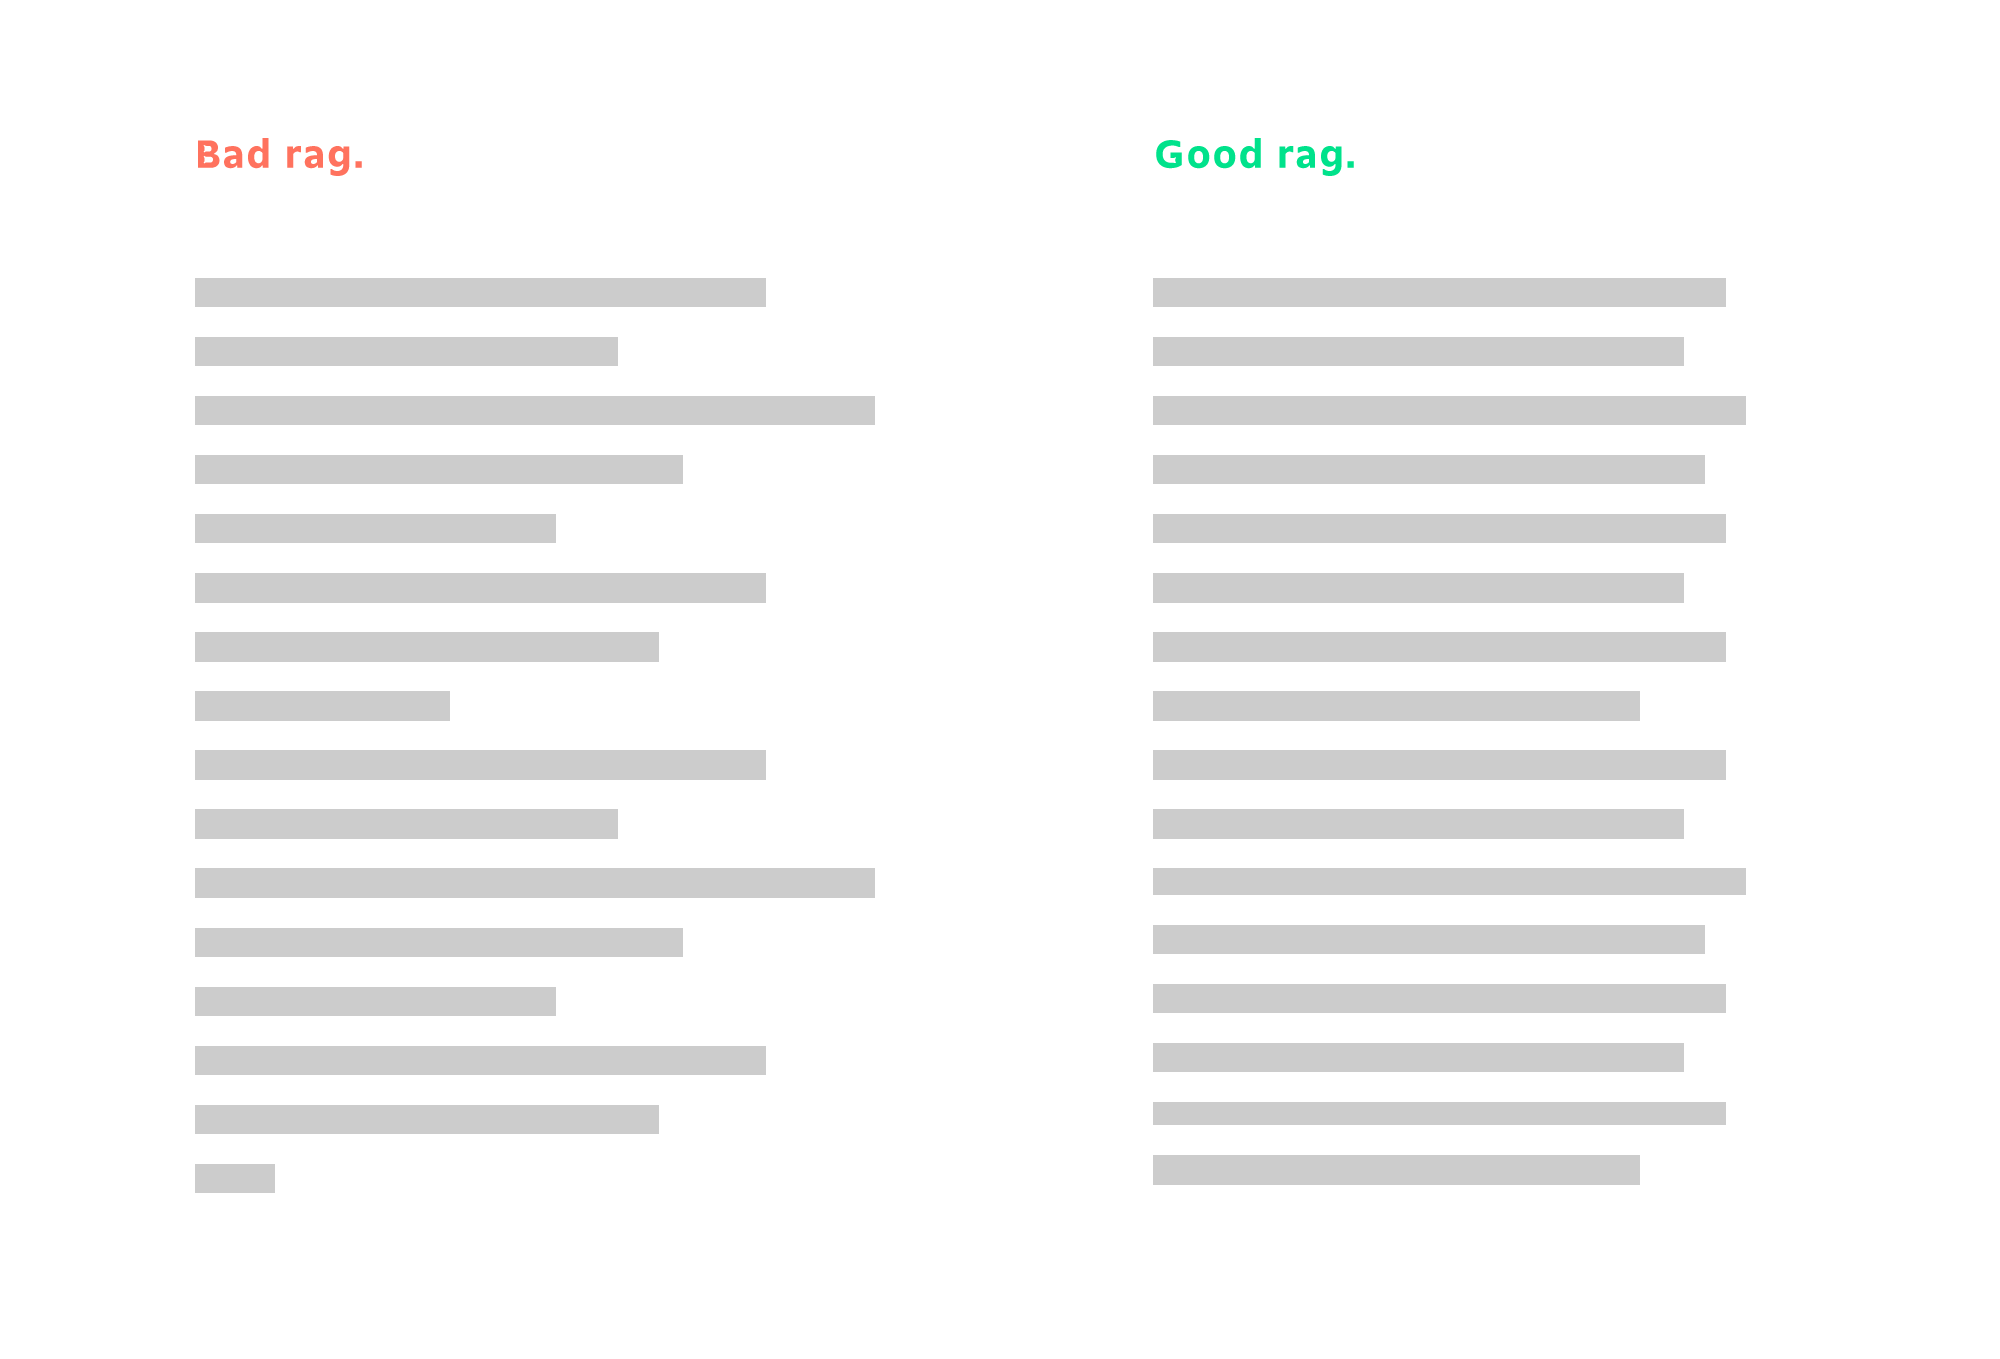 new-font-technologies-rags-hd-large-opt